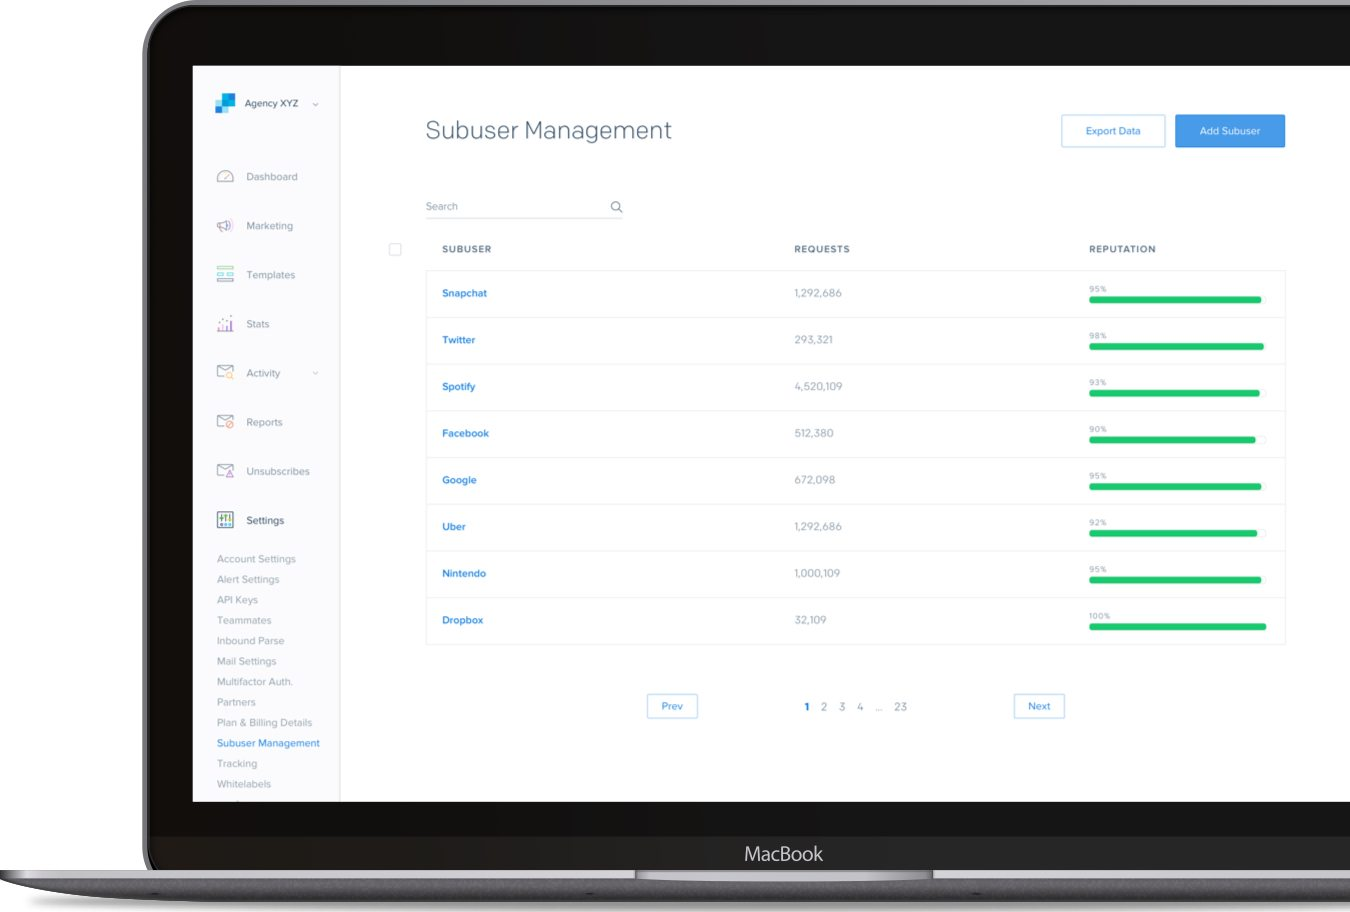 View of subuser management in the SendGrid application on a laptop computer.